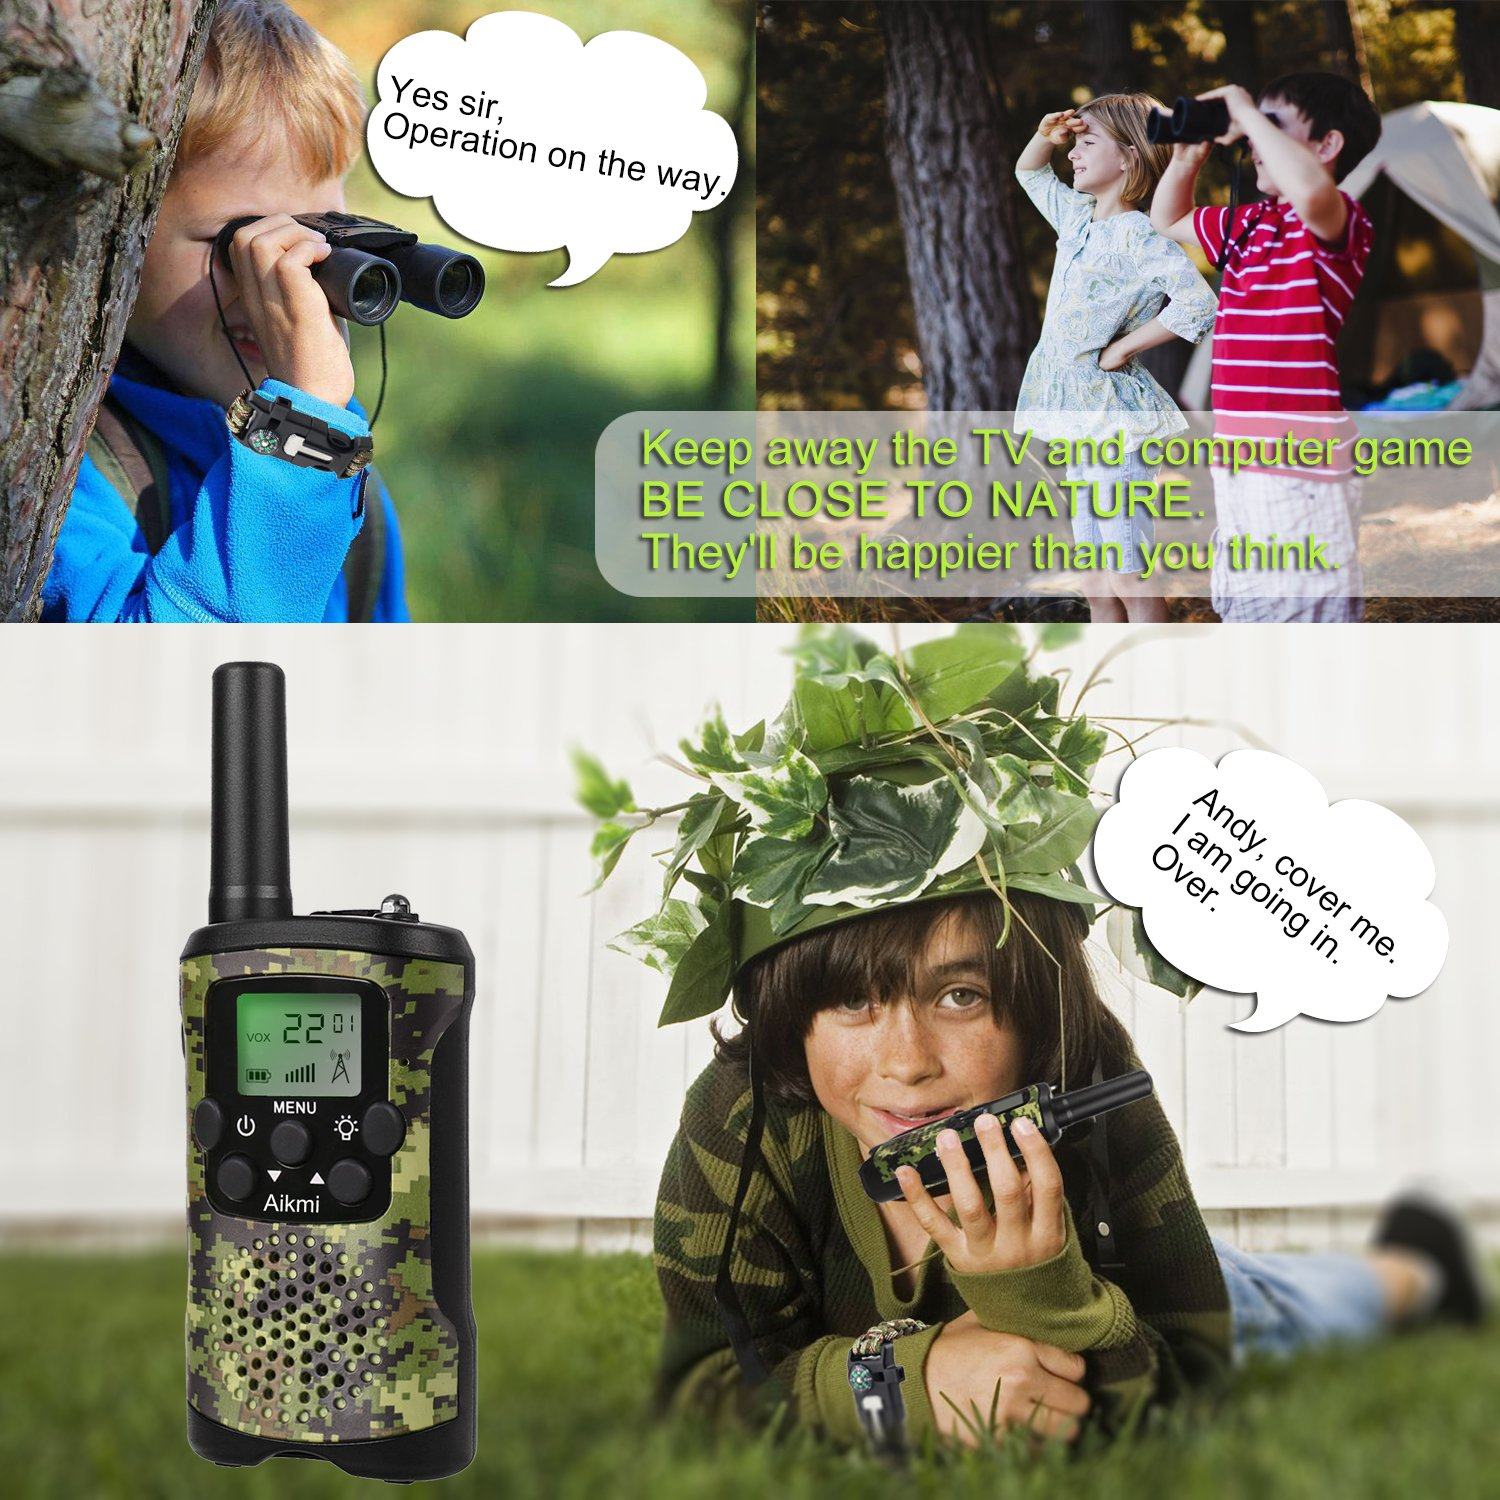 Walkie Talkies for Kids 22 Channel 2 Way Radio 3 Miles Long Range Handheld Walkie Talkies Durable Toy Best Birthday Gifts for 6 year old Boys and Girls fit Outdoor Adventure Game Camping (Green Camo) by Aikmi (Image #3)